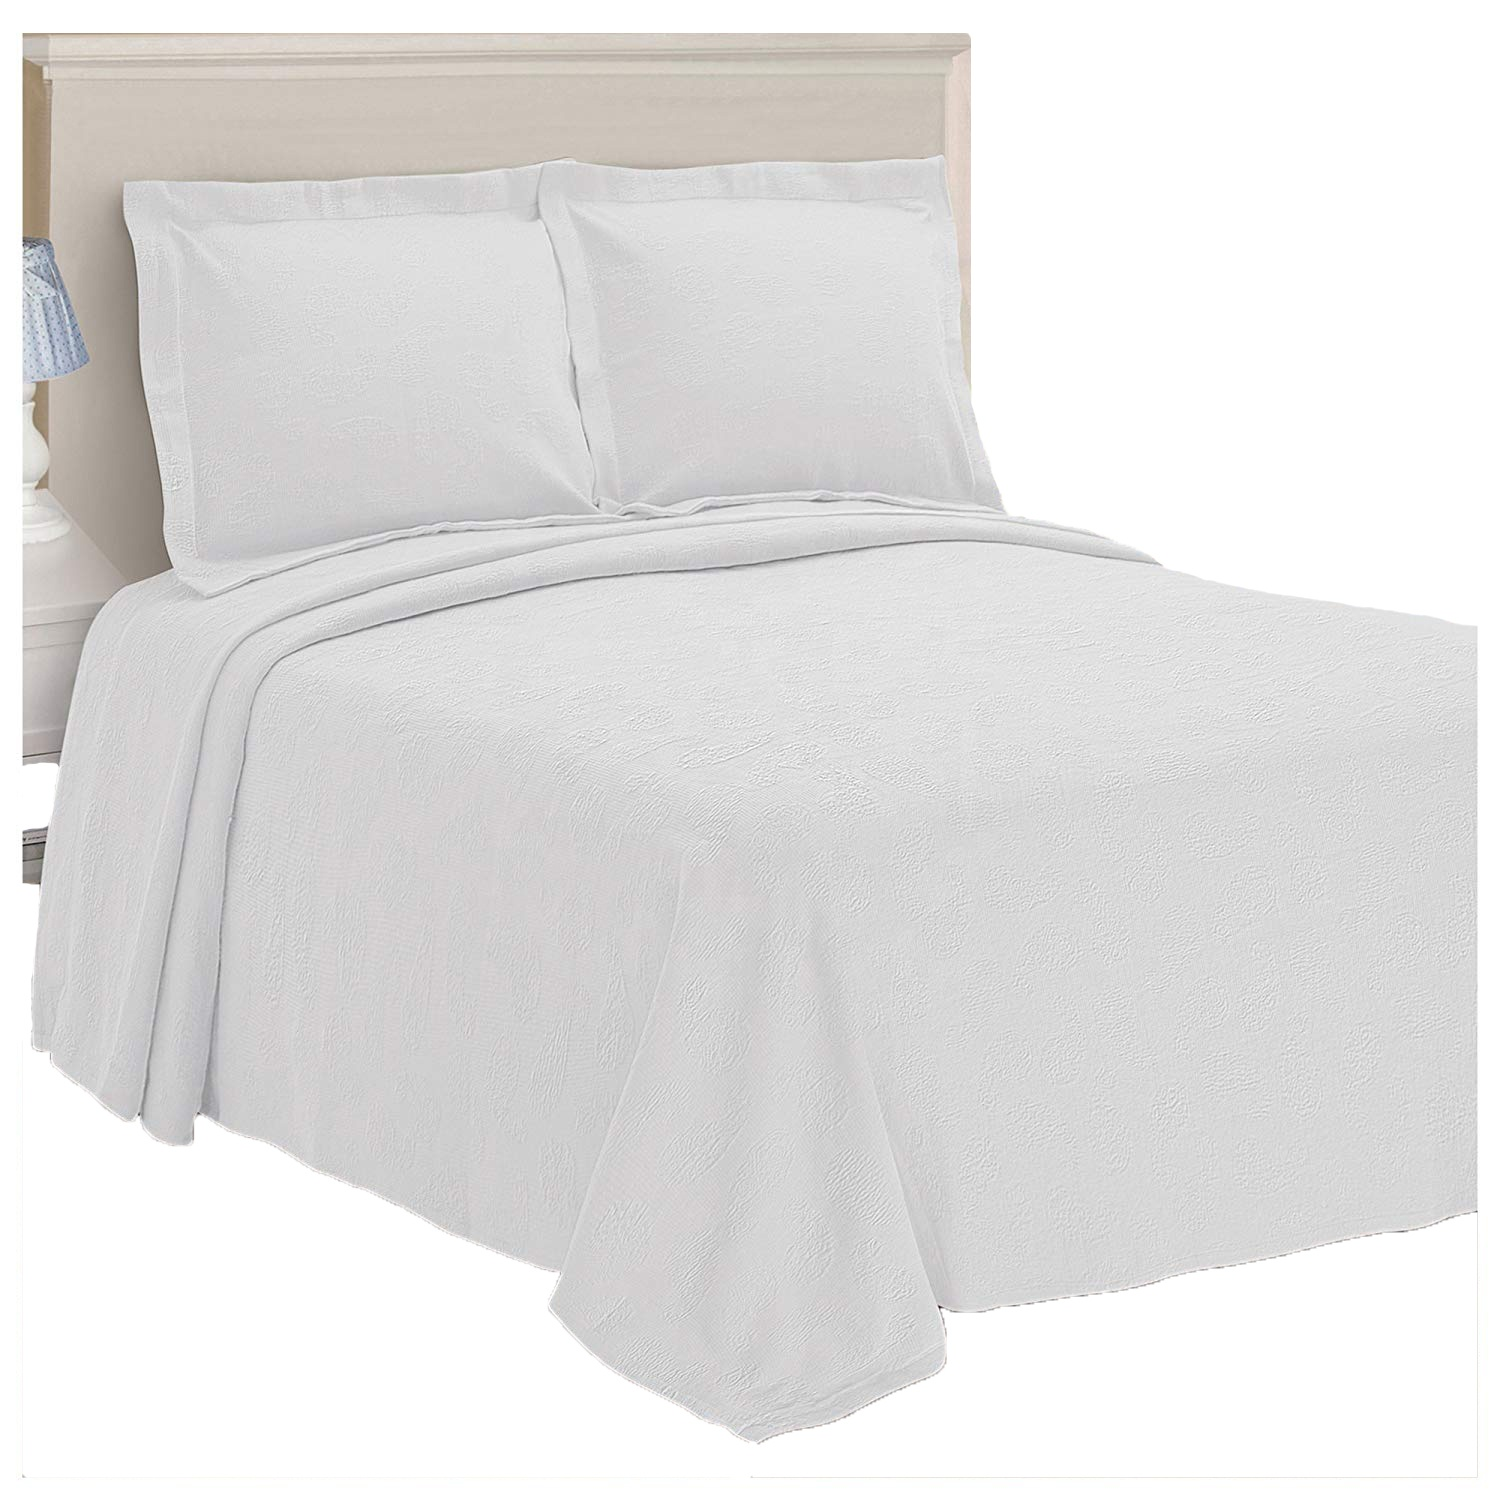 superior paisley jacquard matelasse bedspread 100 cotton quilt with matching pillow shams matelasse coverlet white buy paisley jacquard matelasse